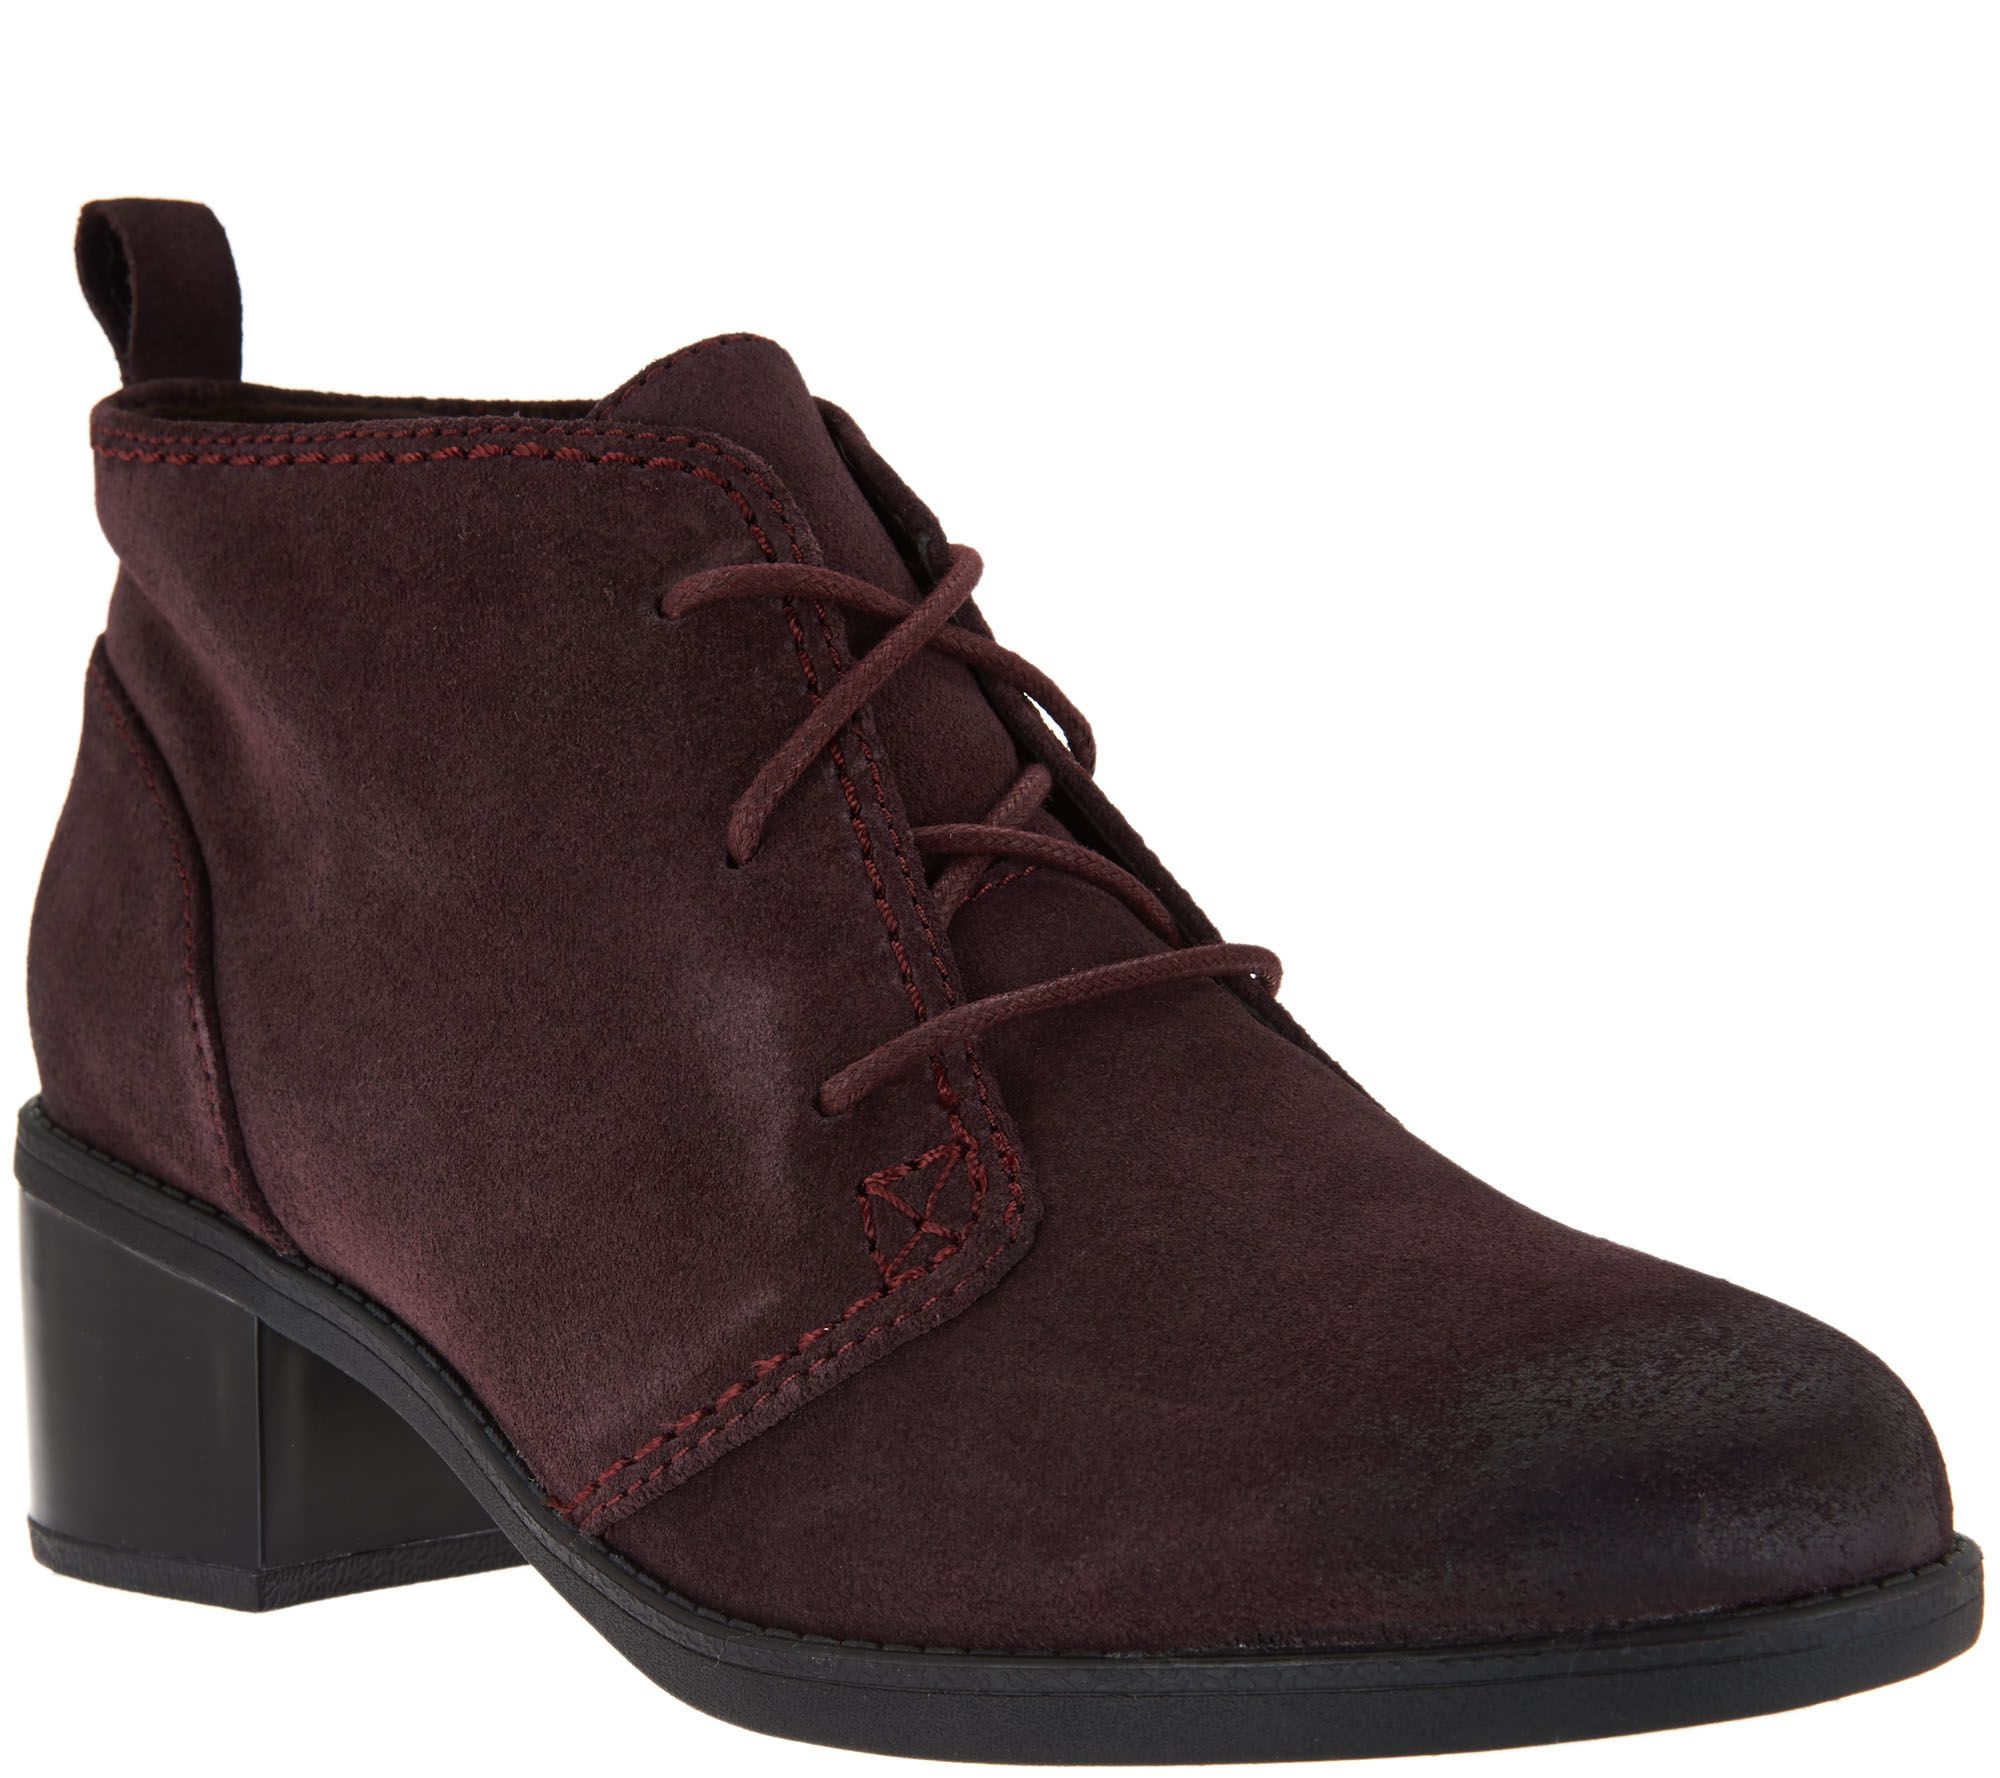 clarks leather or suede lace up ankle boots nevella